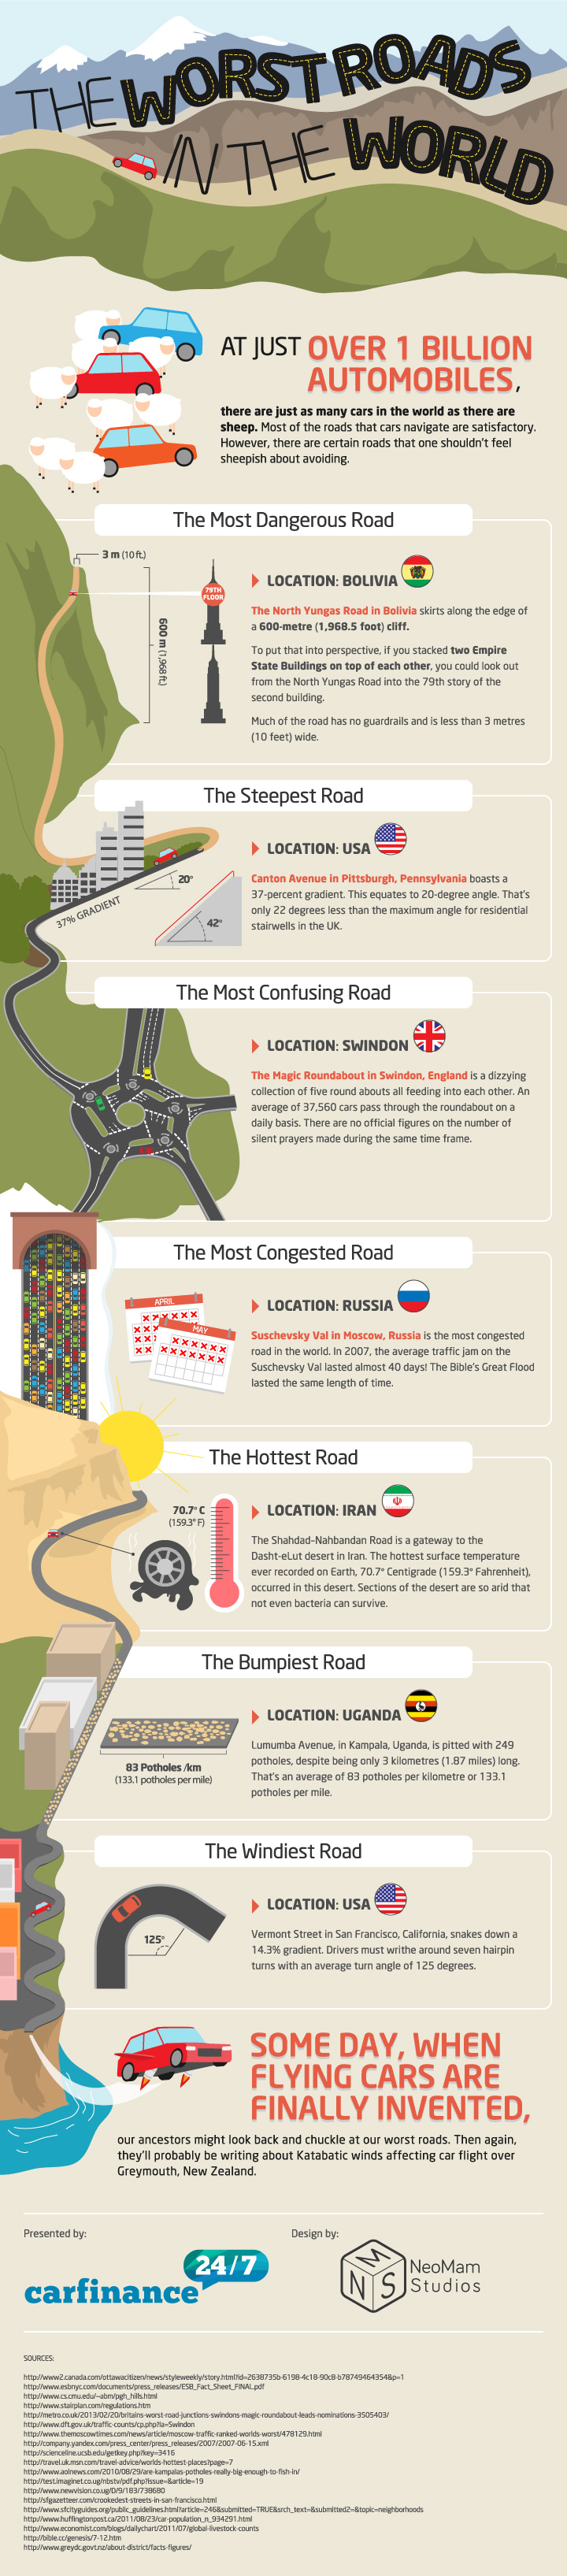 World's Most Dangerous and Worst Roads